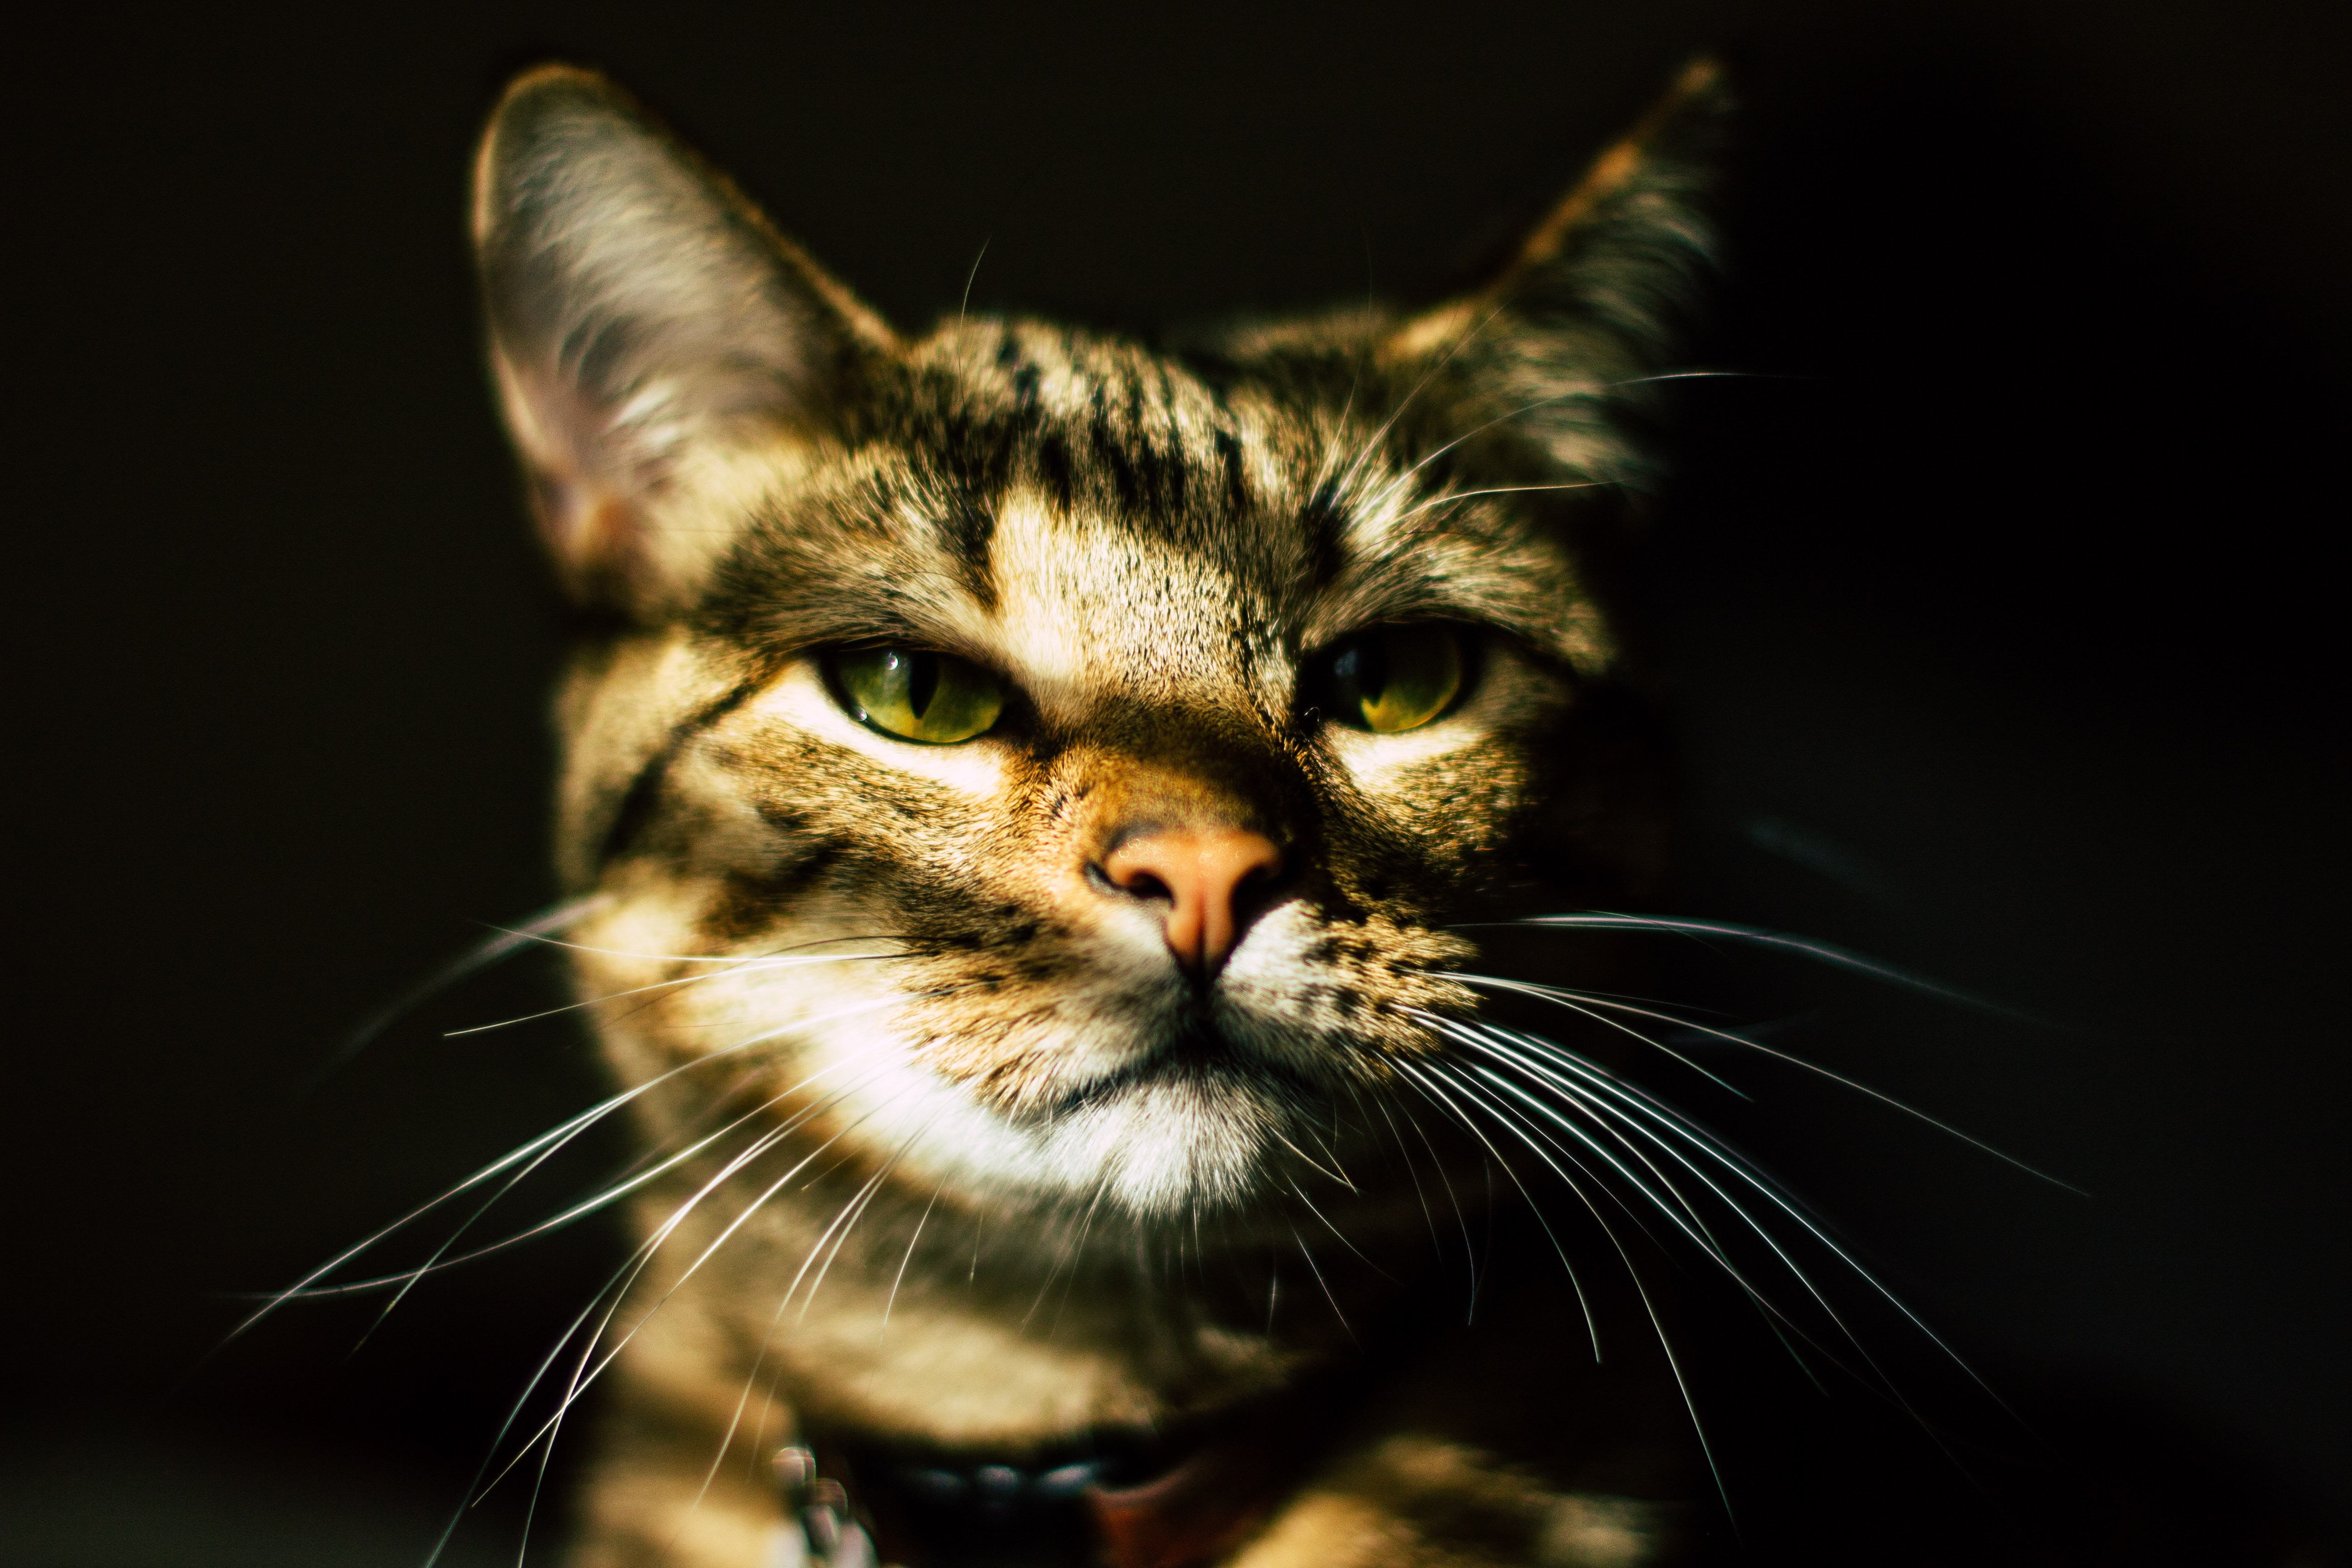 closeup photo of brown tabby cat